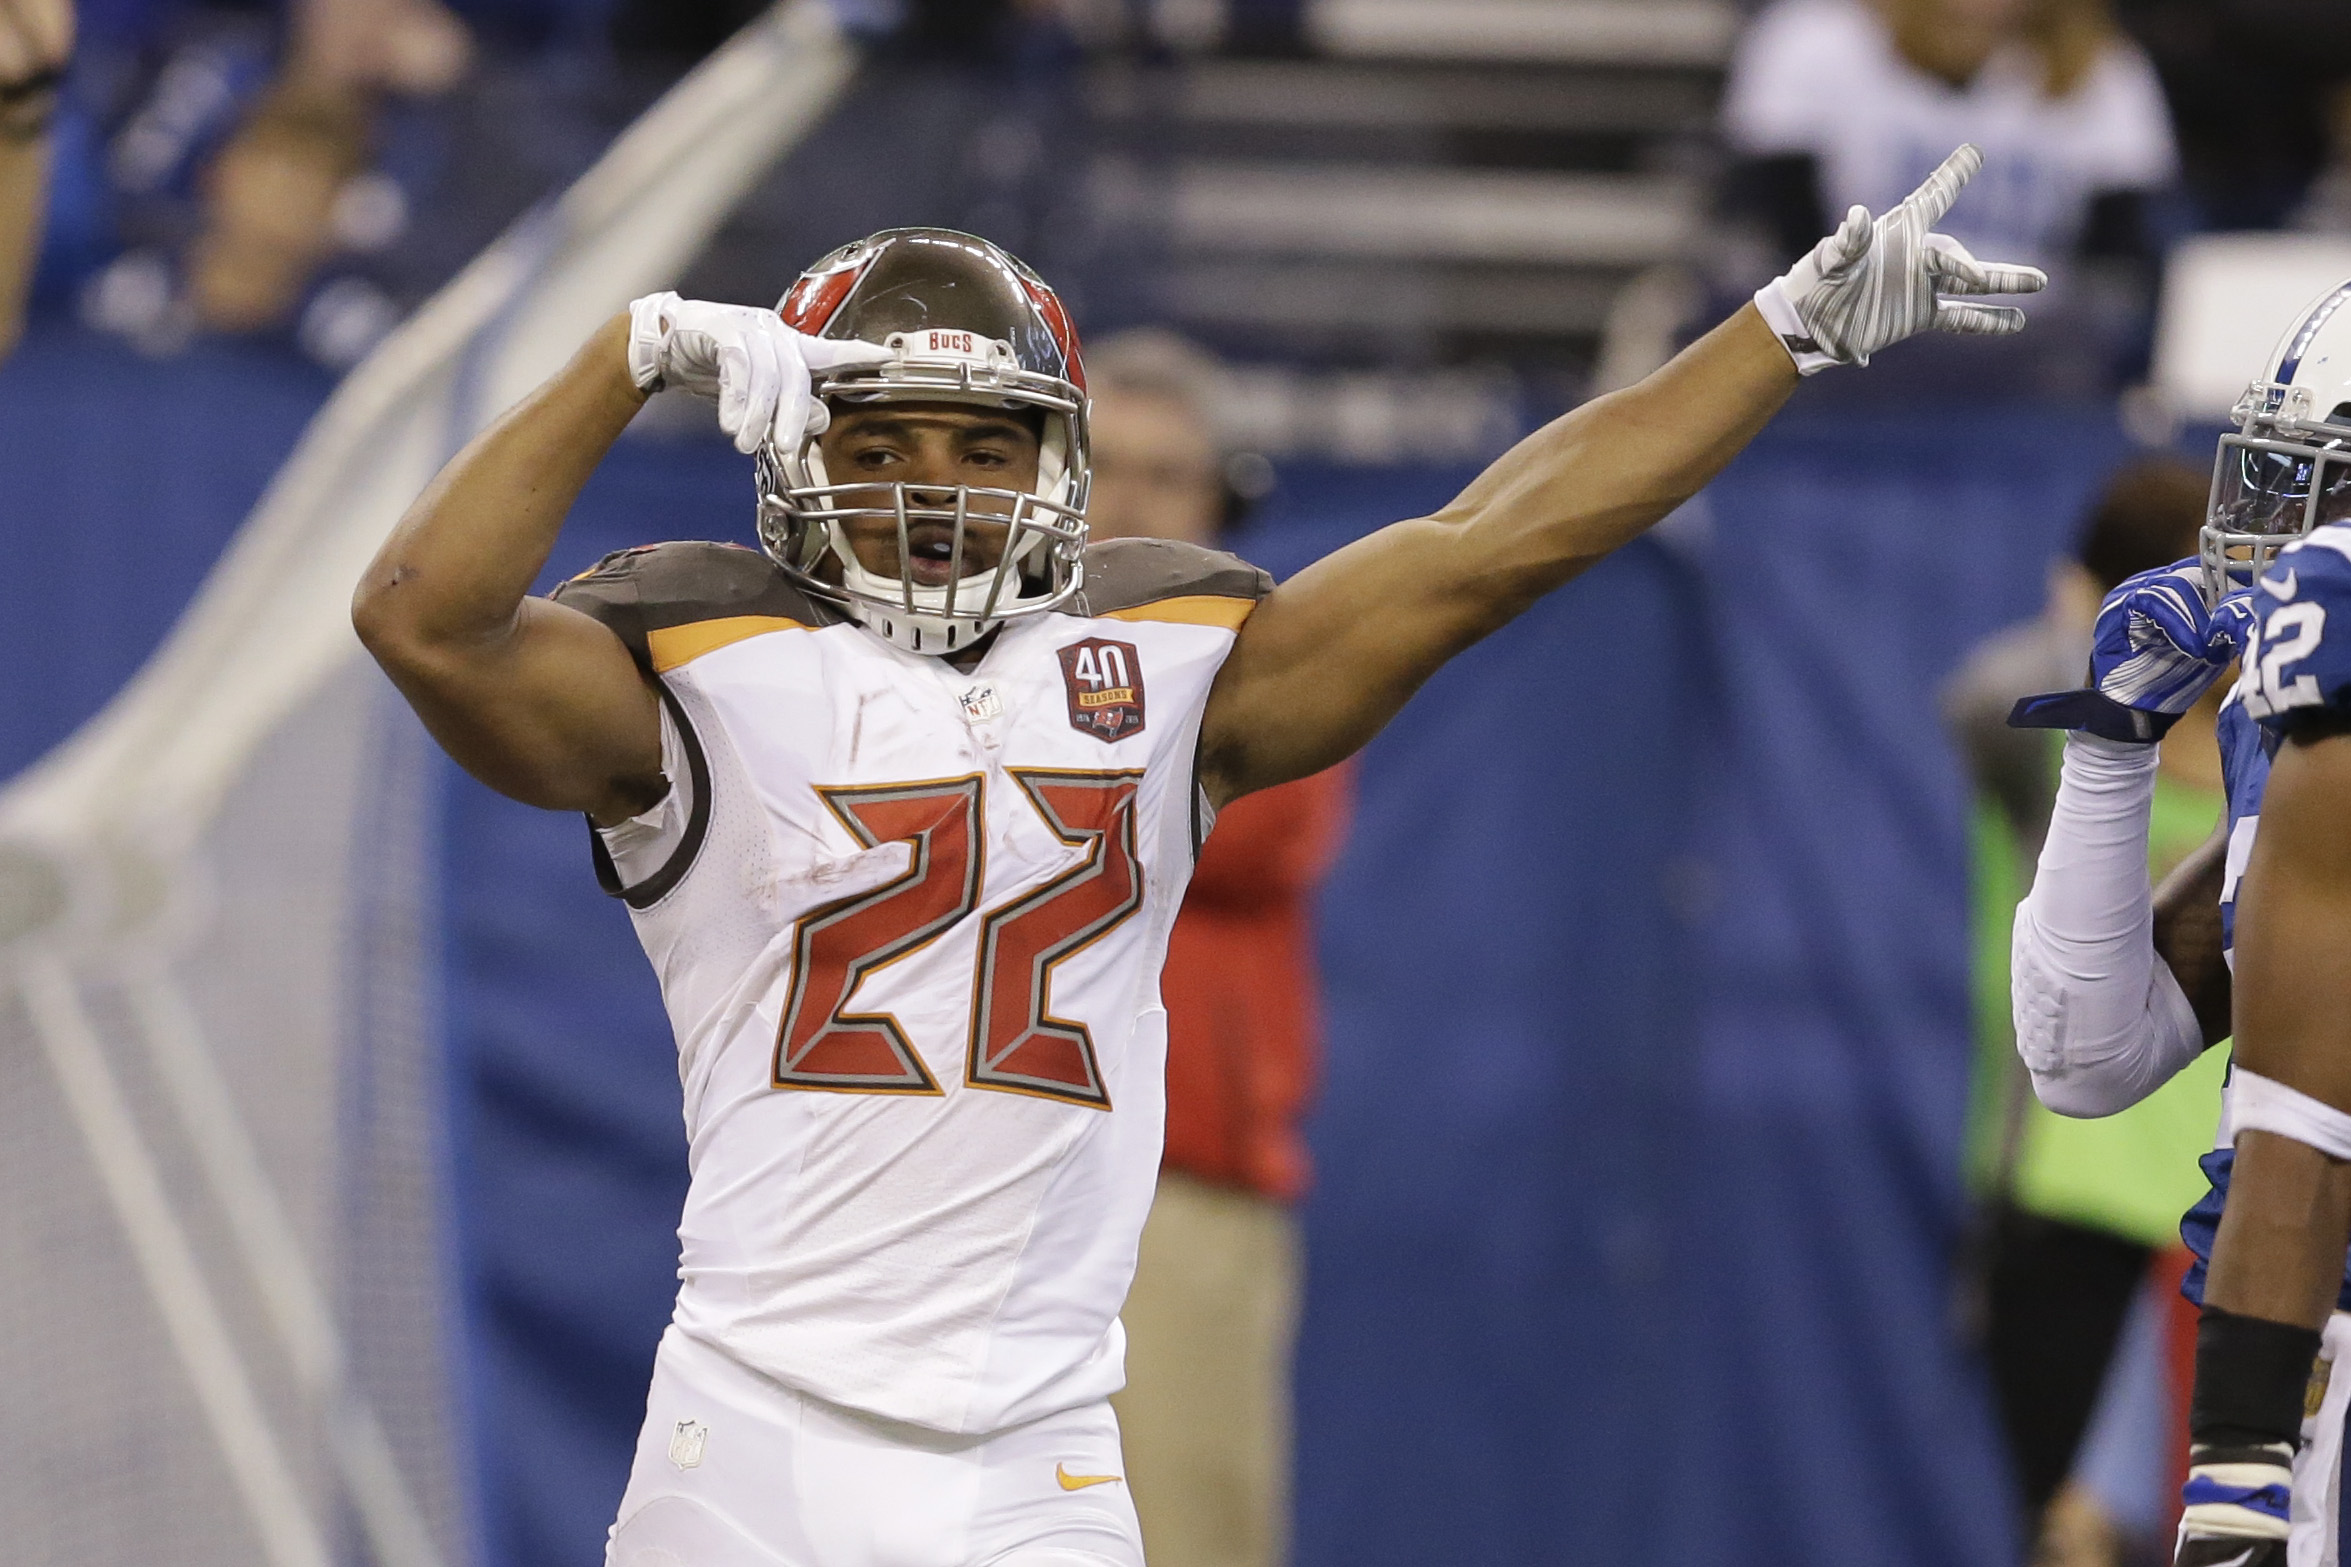 Tampa Bay Buccaneers running back Doug Martin (22) celebrates after picking up a first down against the Indianapolis Colts during the first half of an NFL football game in Indianapolis, Sunday, Nov. 29, 2015. (AP Photo/Darron Cummings)